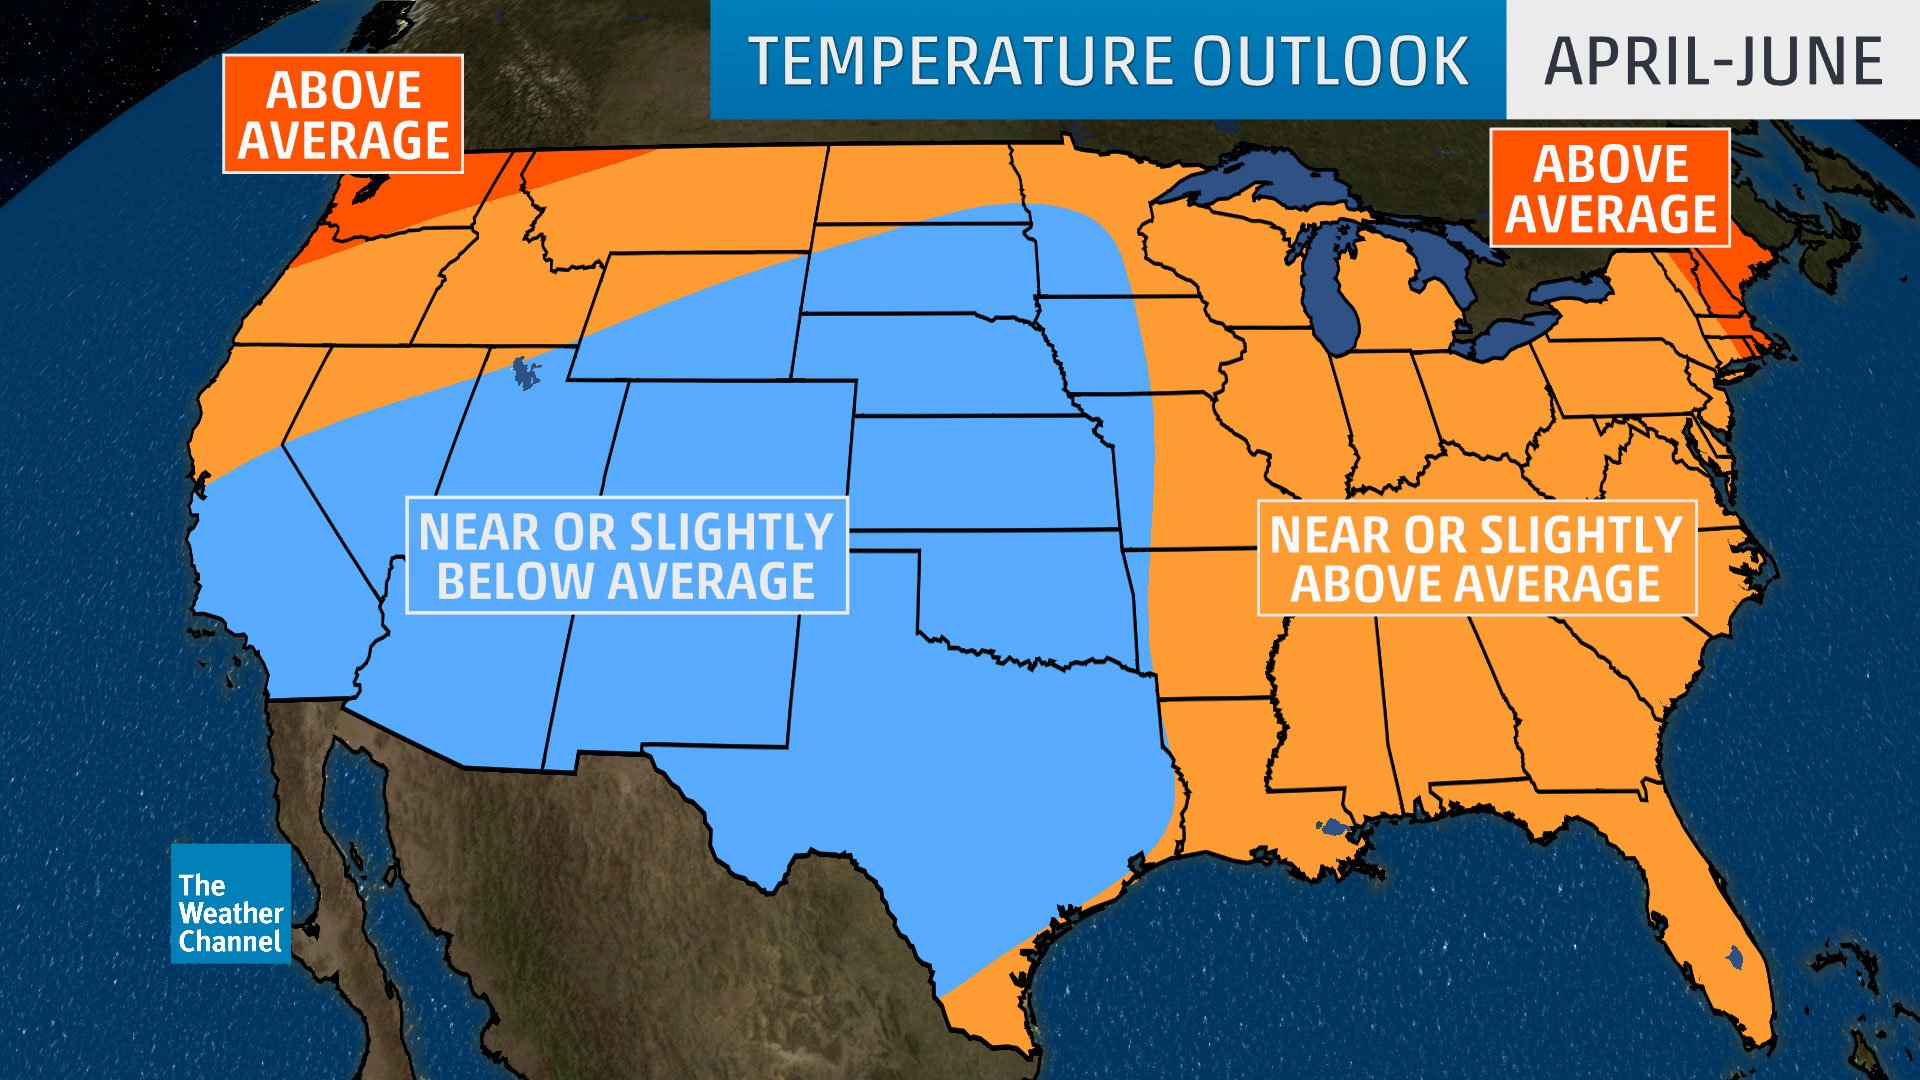 Warmer weather soon? The Weather Channel has a prediction